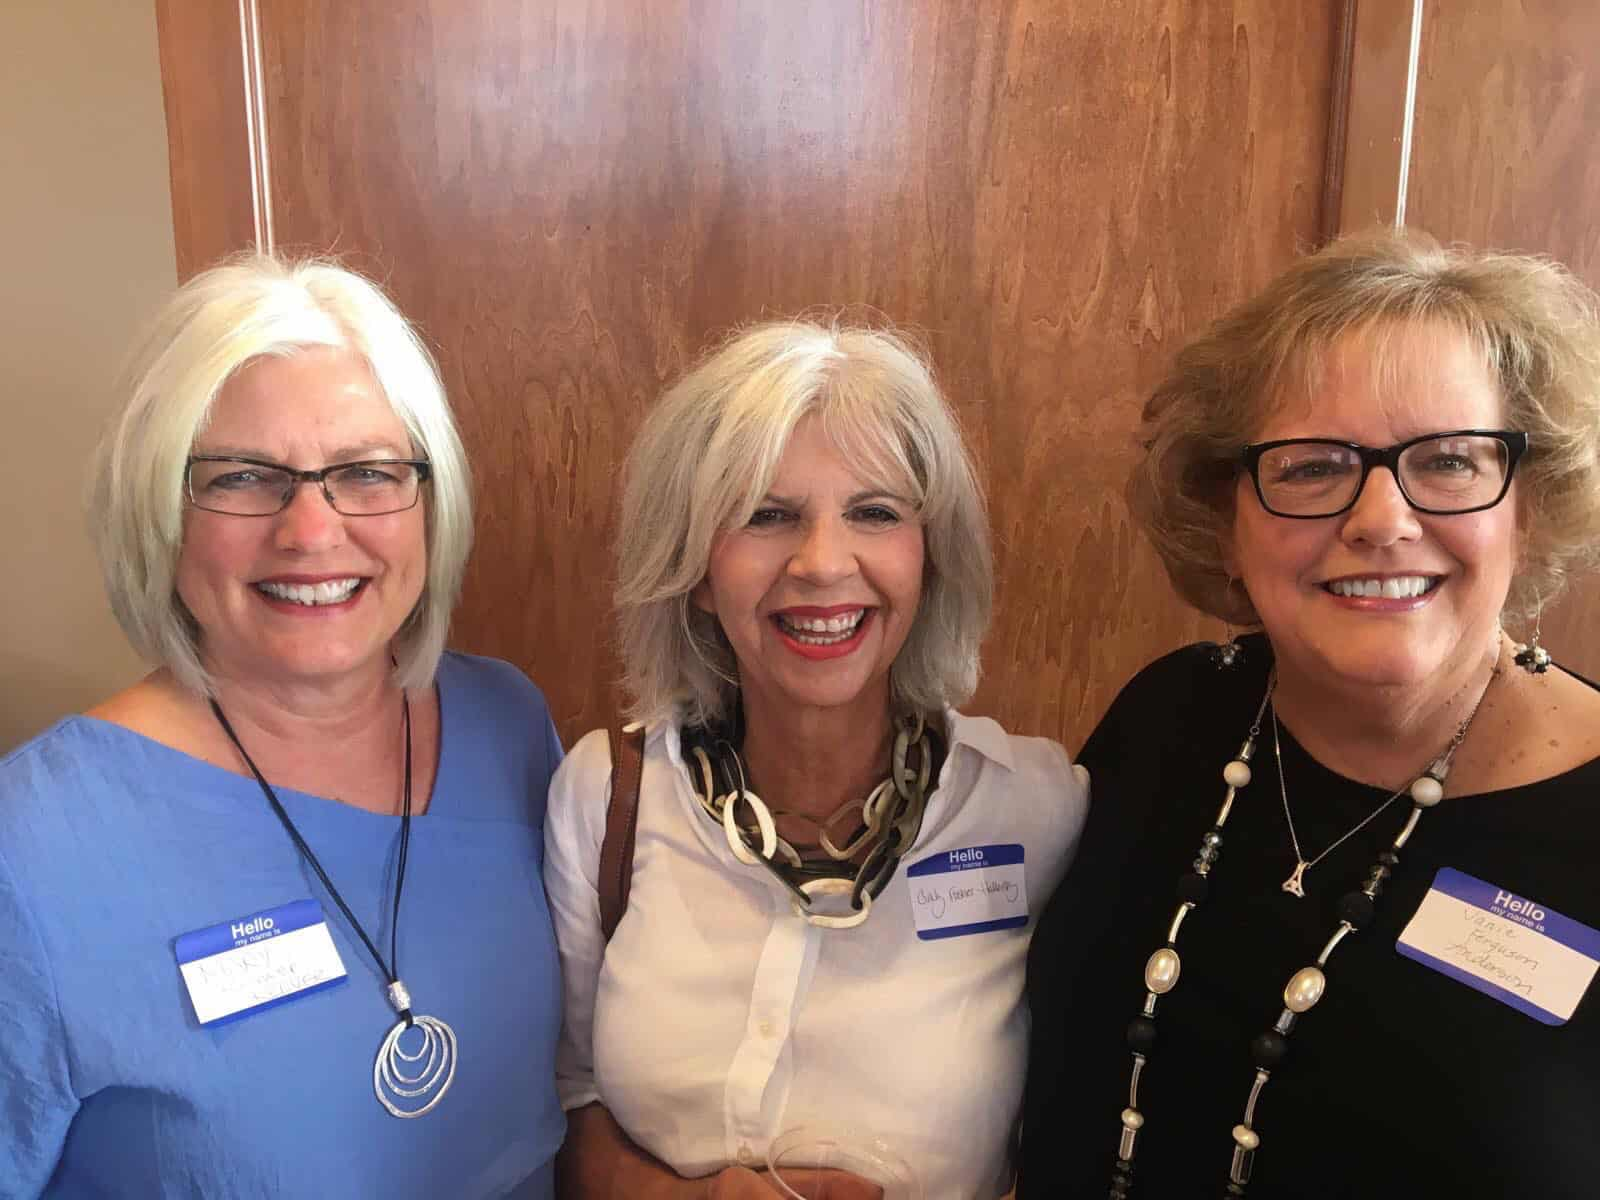 cindy hattersley and her high school friends